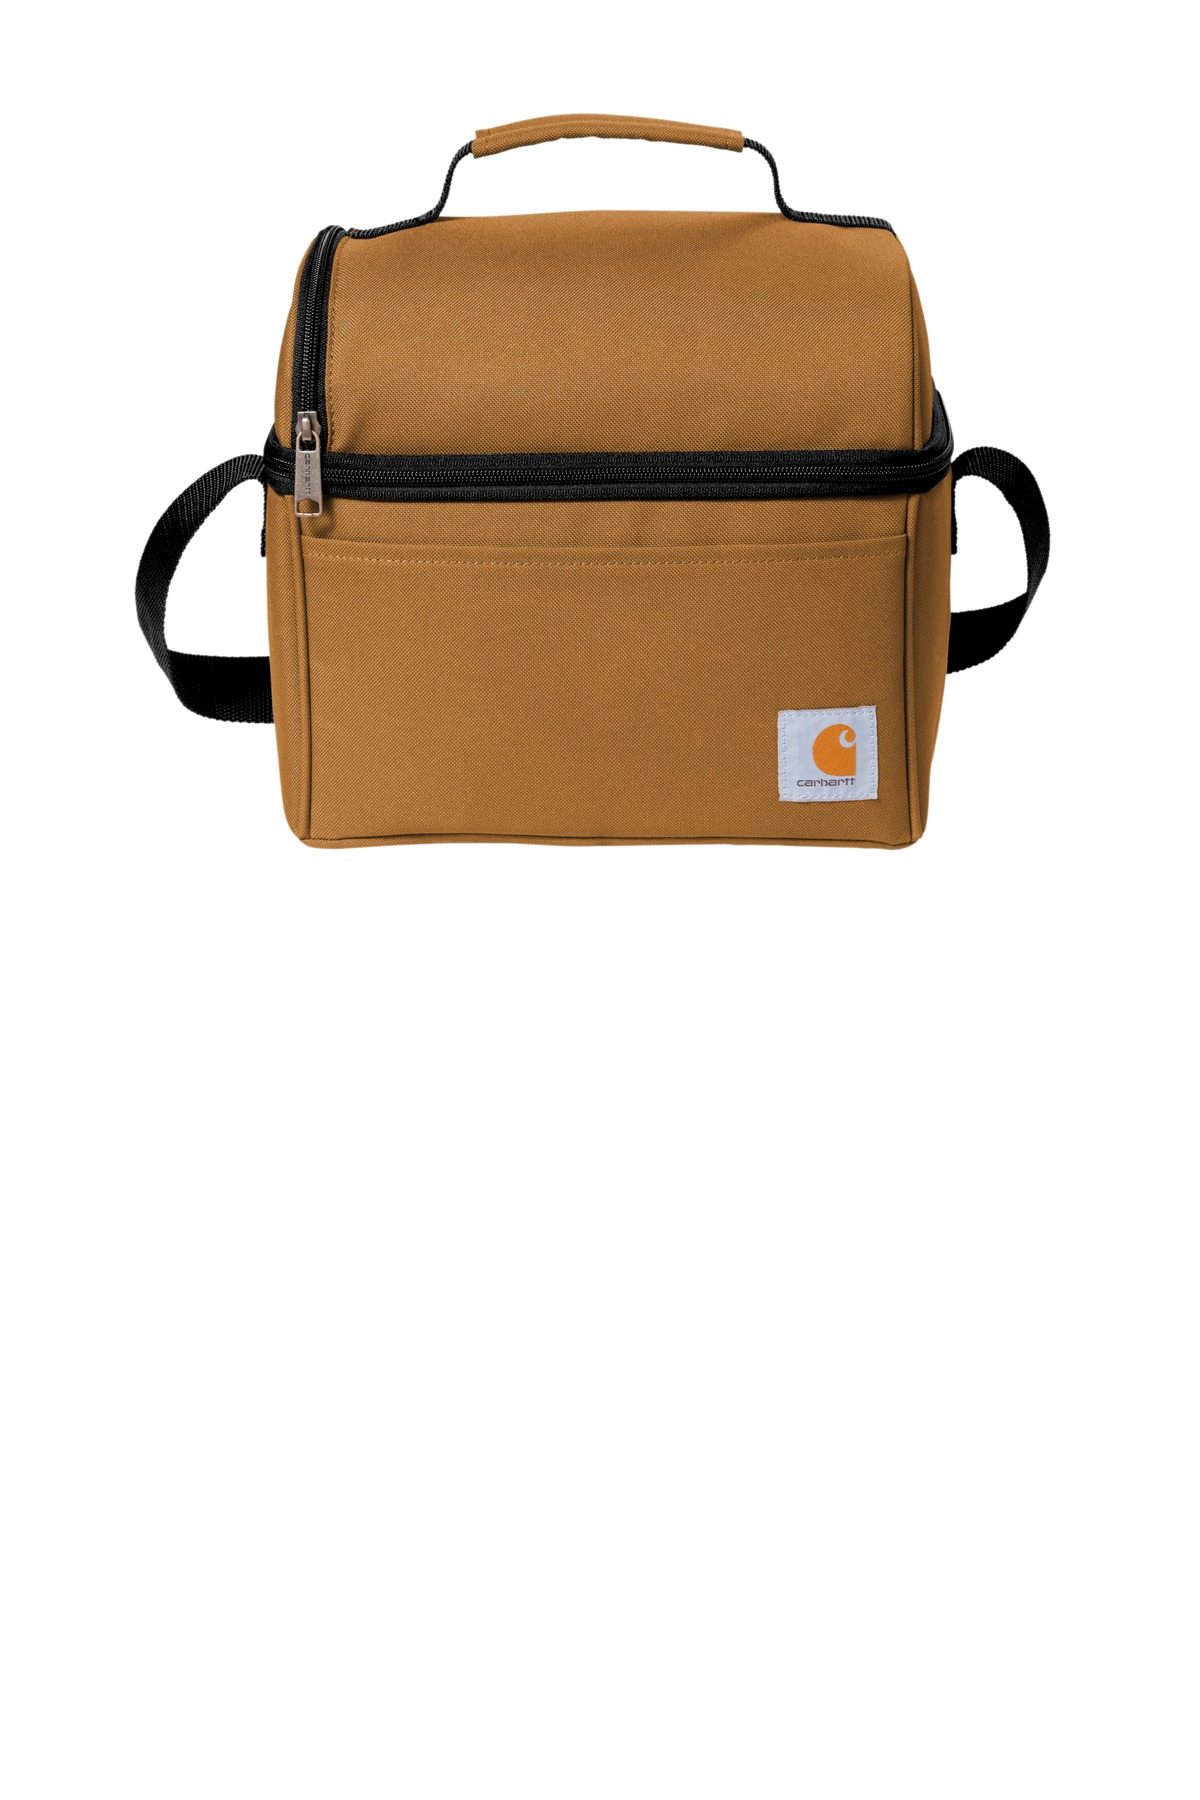 Carhartt ®   Lunch 6-Can Cooler. CT89251601 - Carhartt Brown